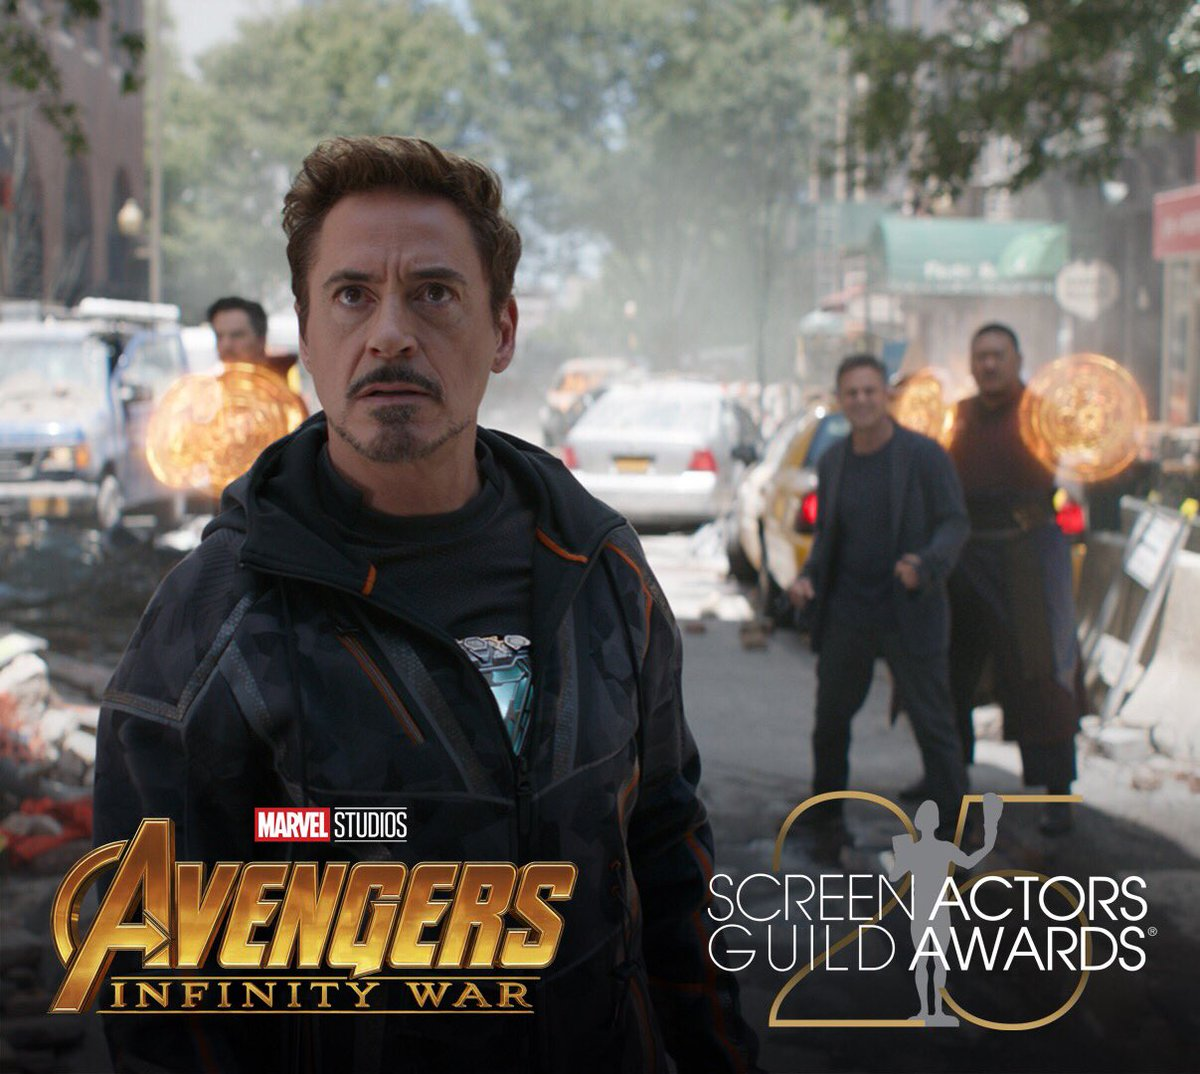 Congratulations to Marvel Studios' Avengers #InfinityWar & #AntManandTheWasp which have been nominated for Outstanding Action Performance by a Stunt Ensemble in a Motion Picture by the #SAGAwards!